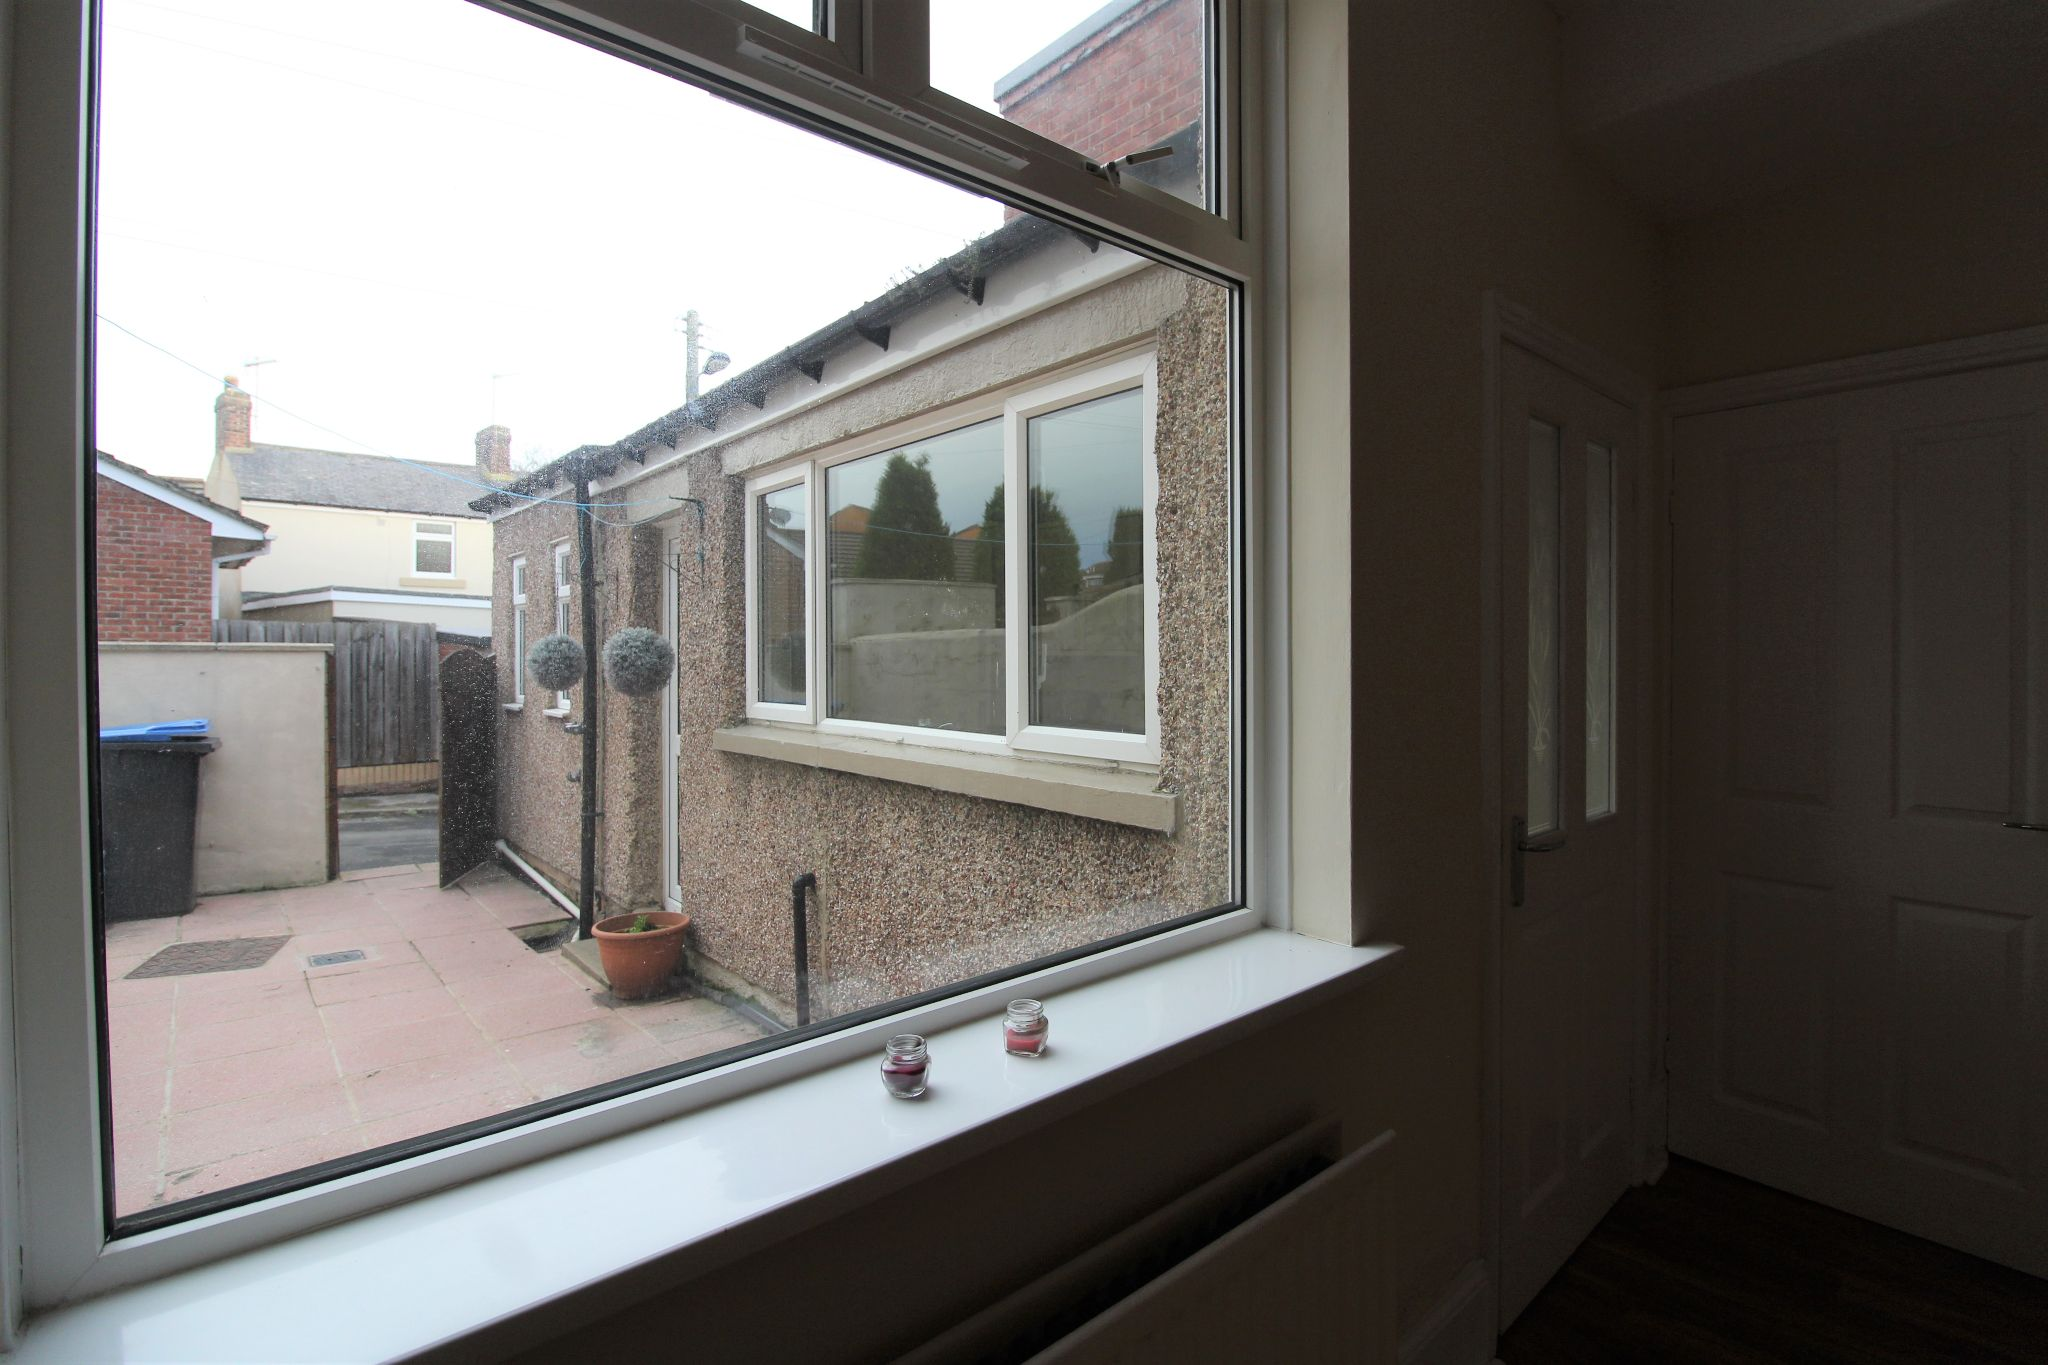 3 bedroom mid terraced house For Sale in Crook - Photograph 12.